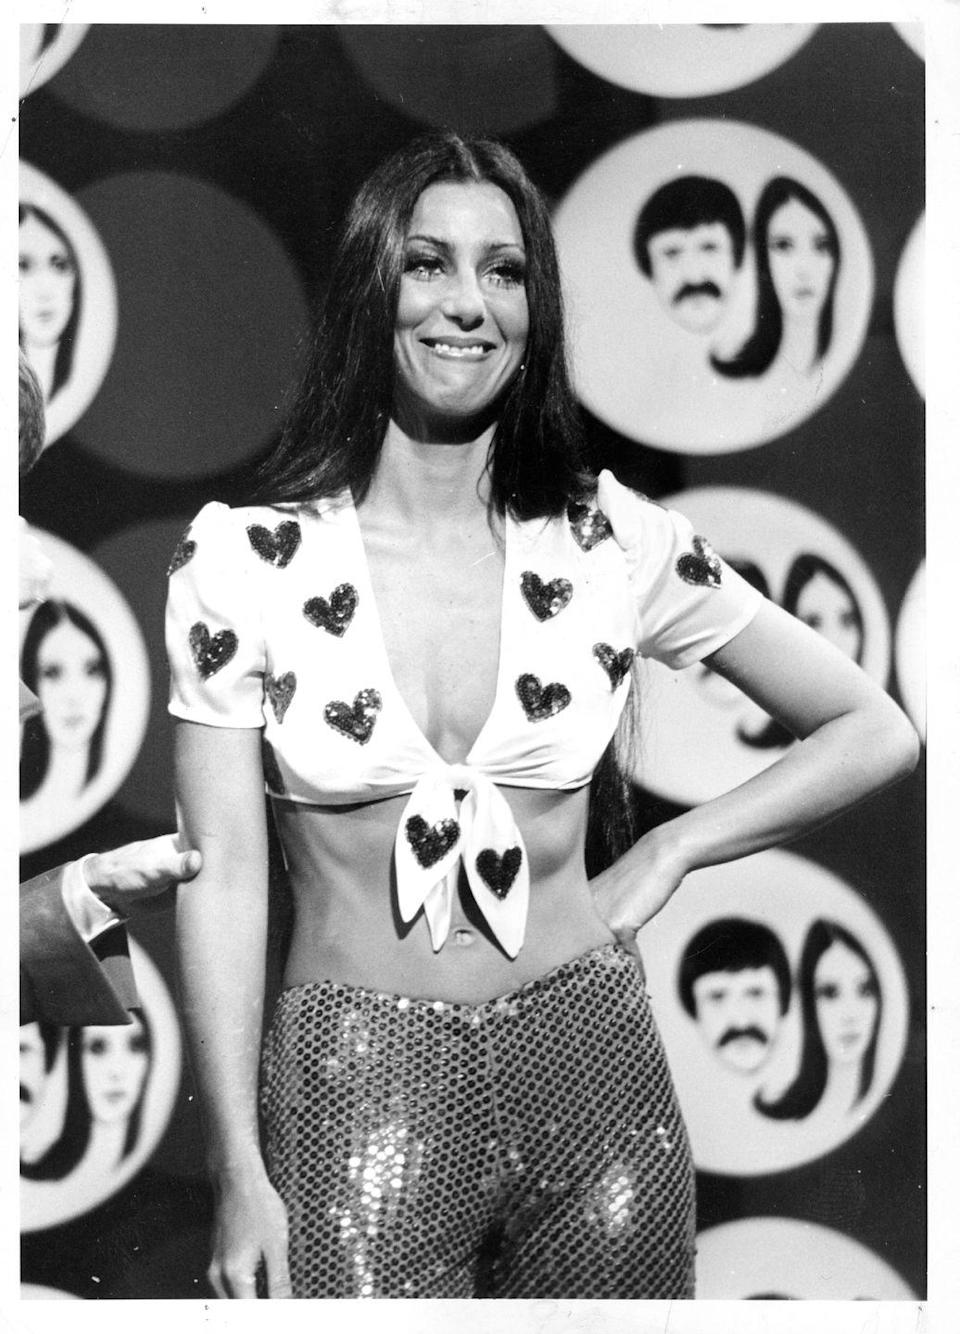 <p>Wearing a heart-printed crop top and sequin pants for a segment on the <em>Sonny and Cher</em> show.</p>